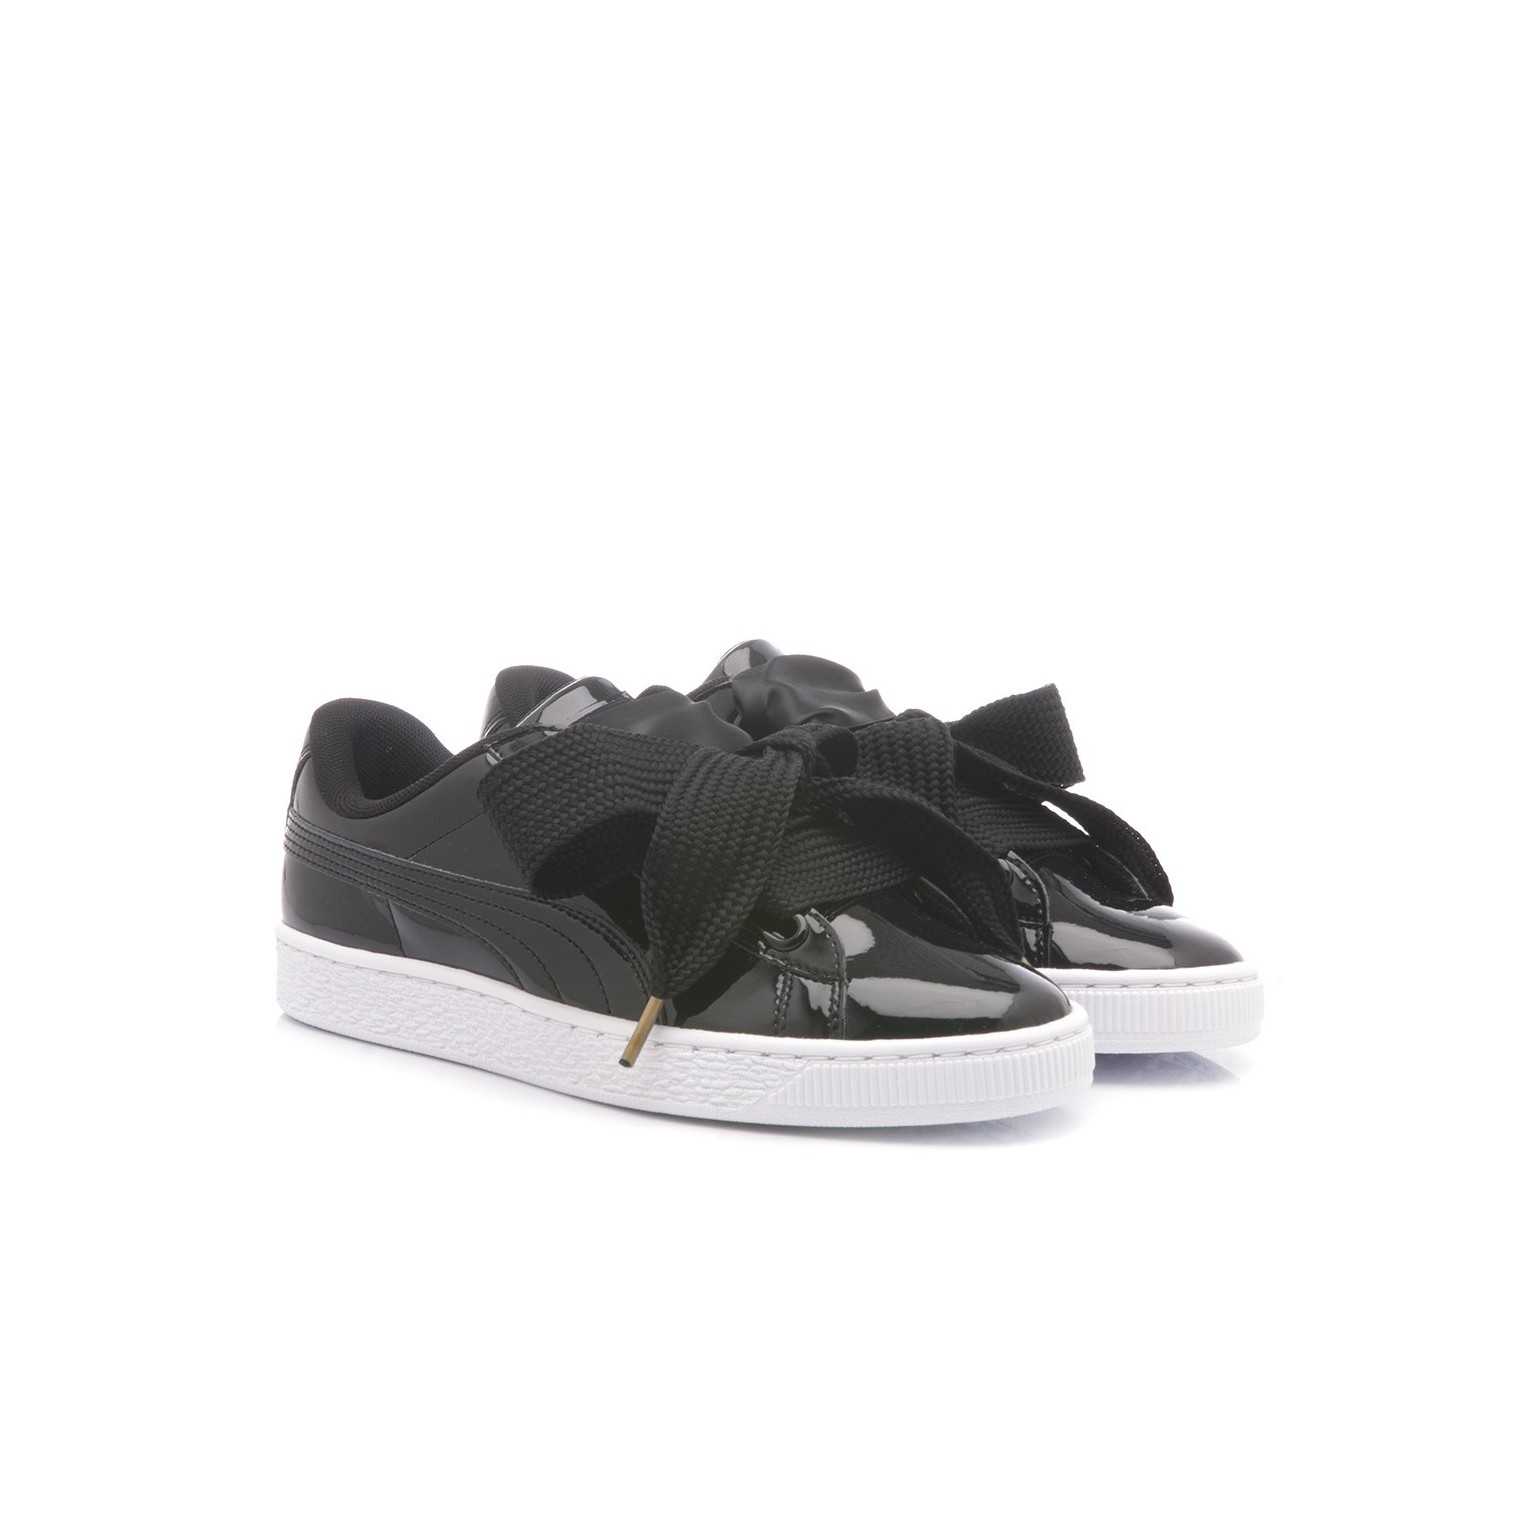 separation shoes f16ee a9eb2 Puma Women's Sneakers Basket Heart Patent Wn's Black